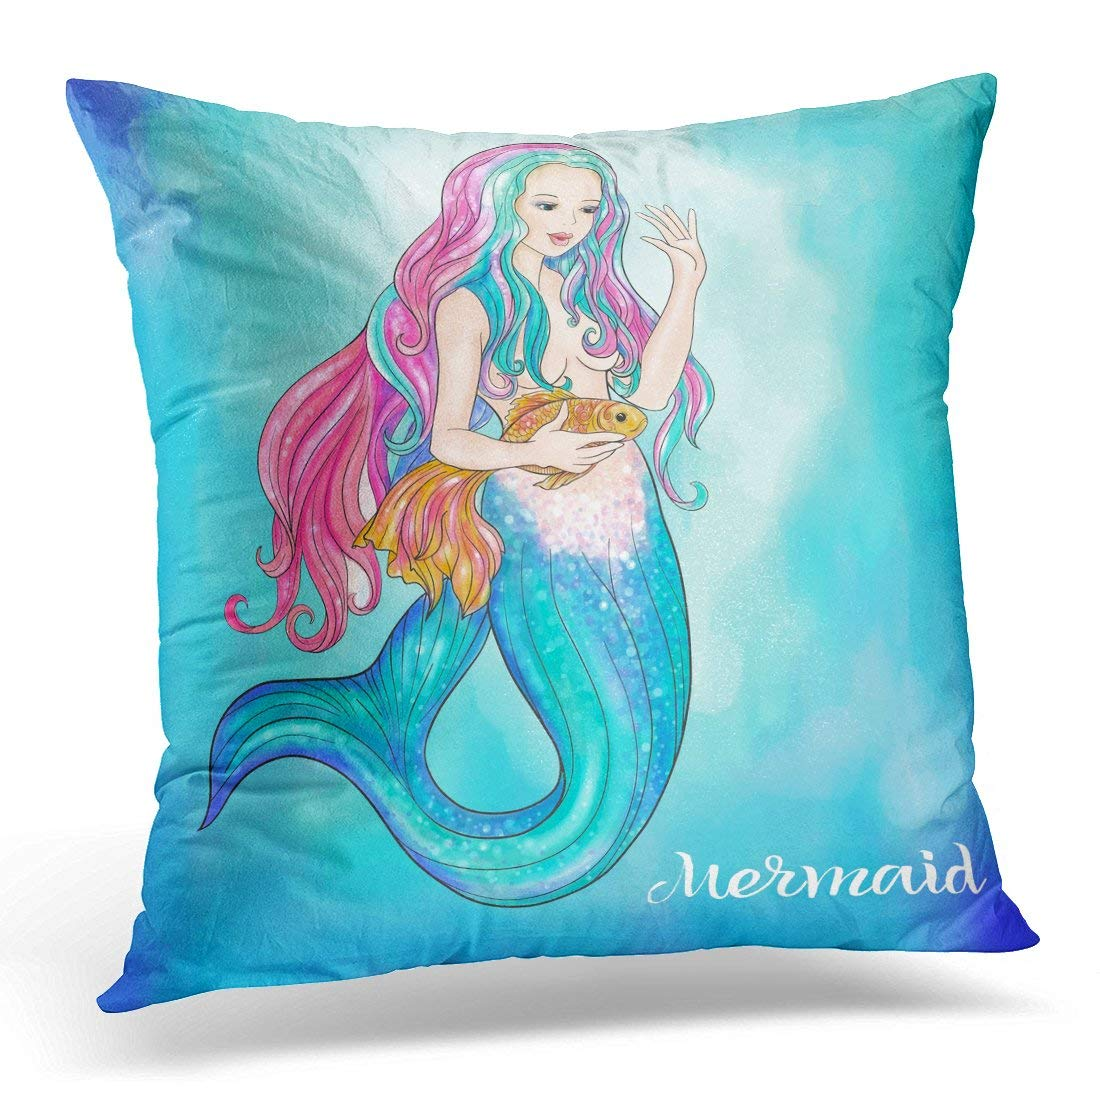 USART Undersea Mermaid Holding Gold Fish on Watercolor Linen Color Beautiful Pillow Case Pillow Cover 20x20 inch